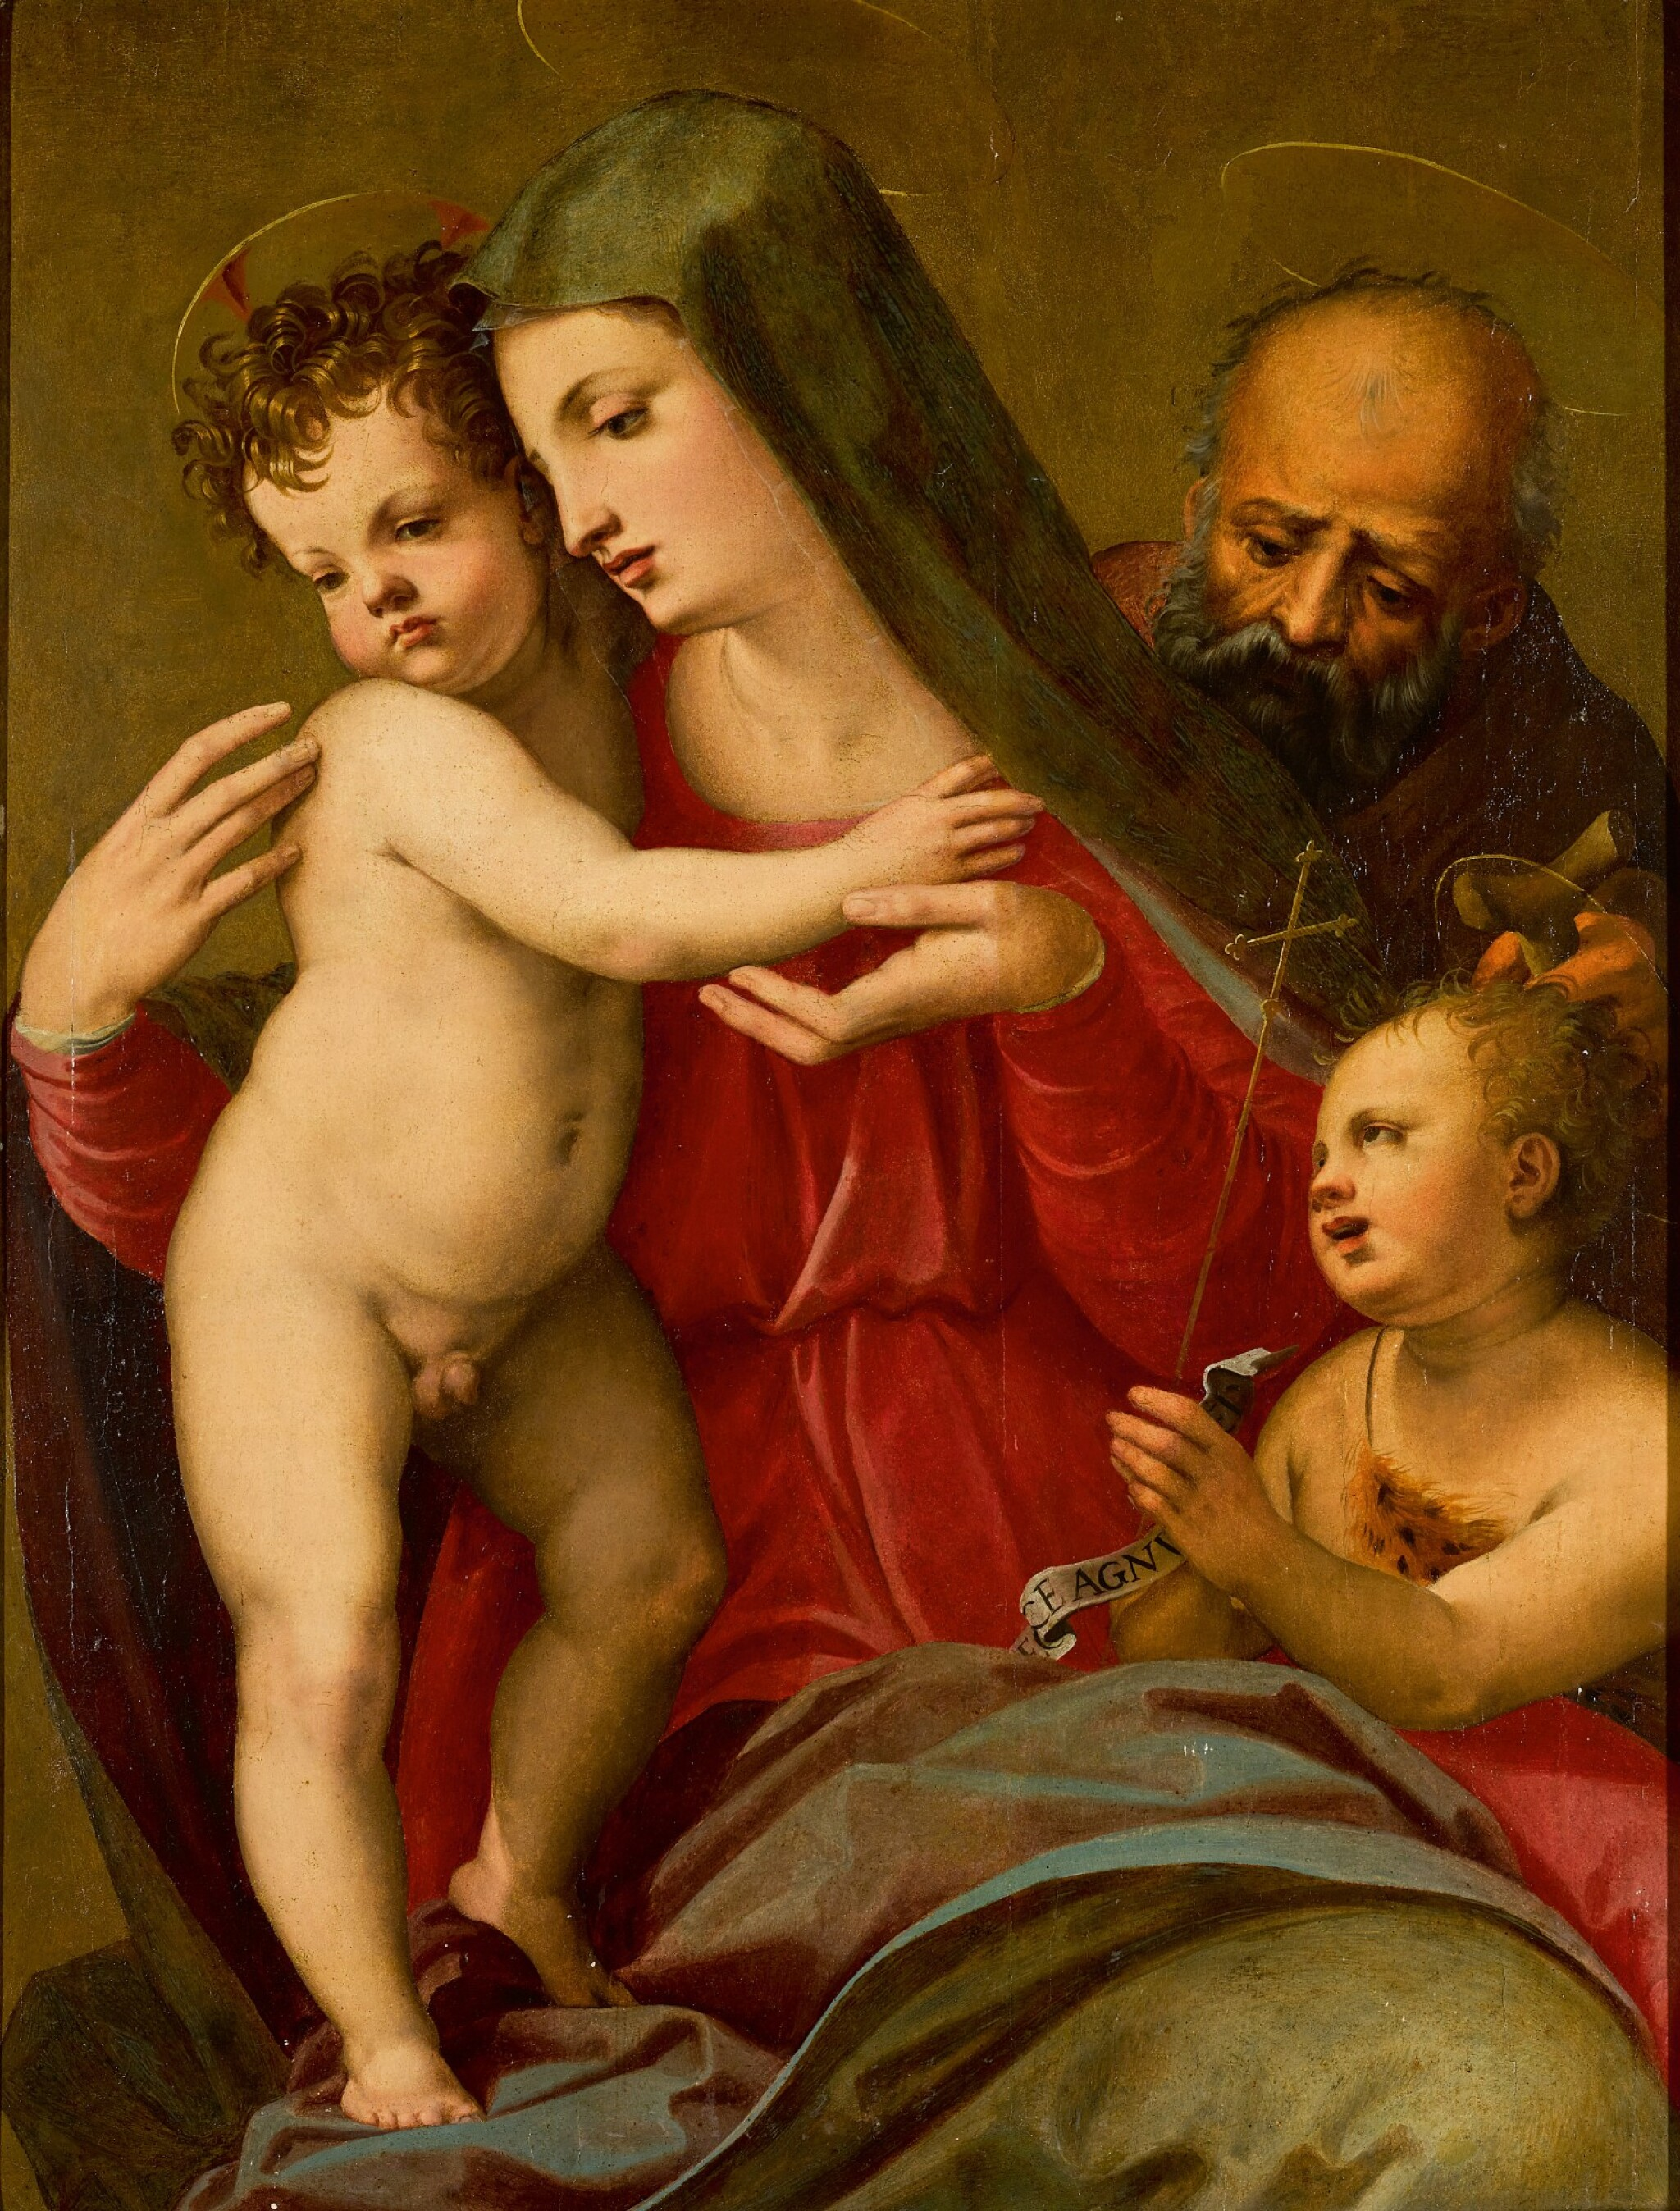 View 1 of Lot 108. The Holy Family with the young Saint John the Baptist.